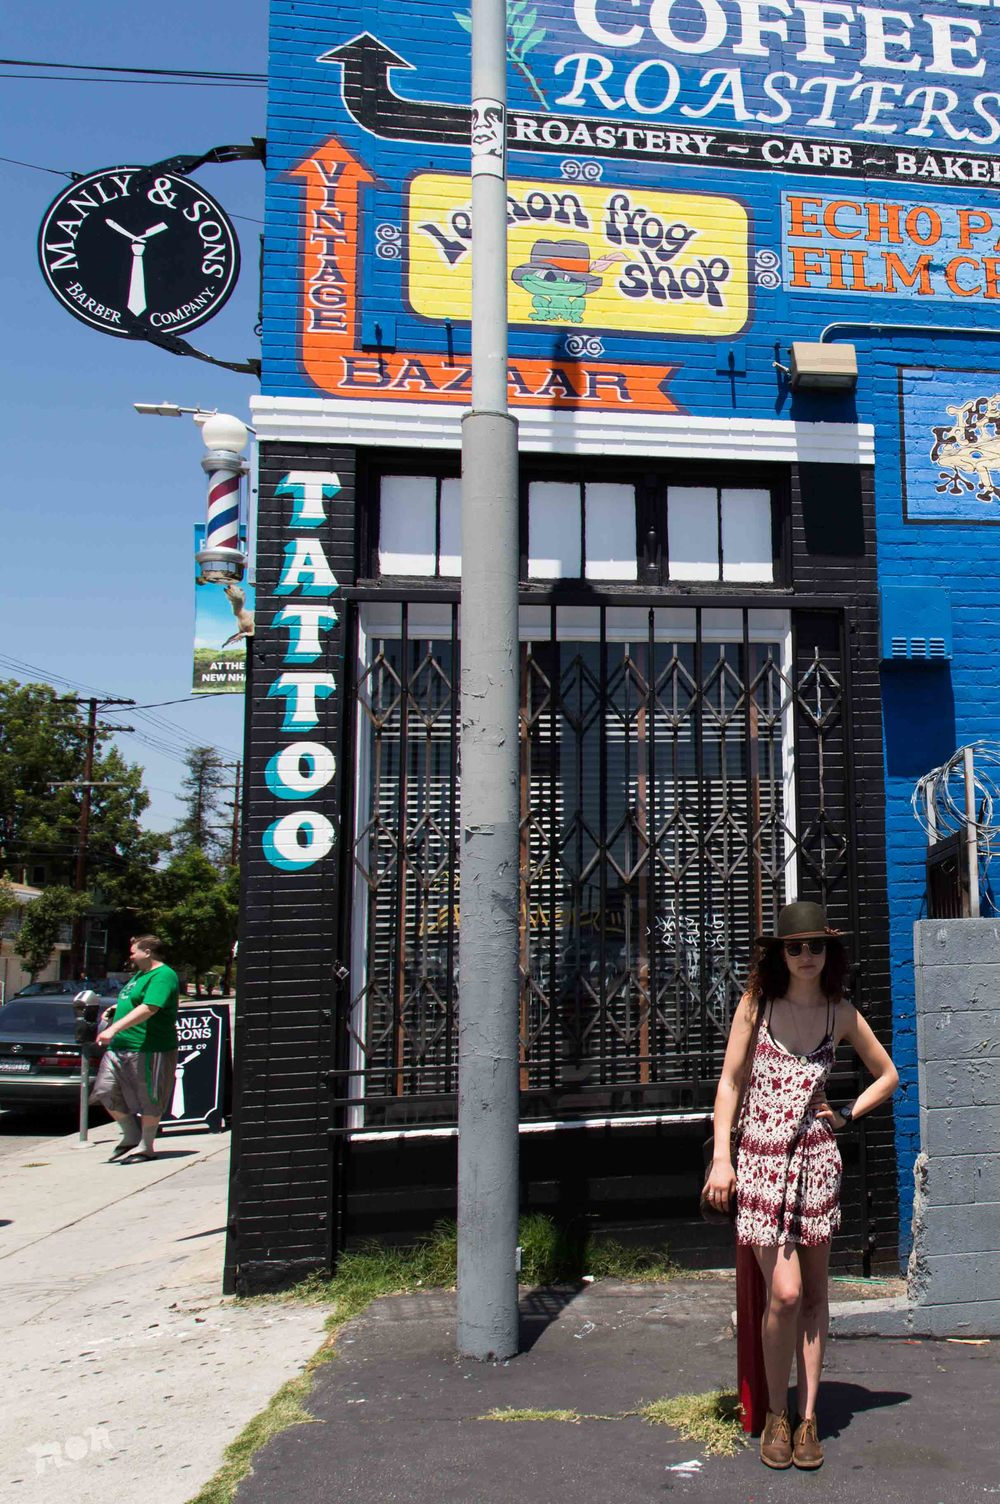 Hillary in front of a gentrified section of Echo Park on Sunset & Alvarado